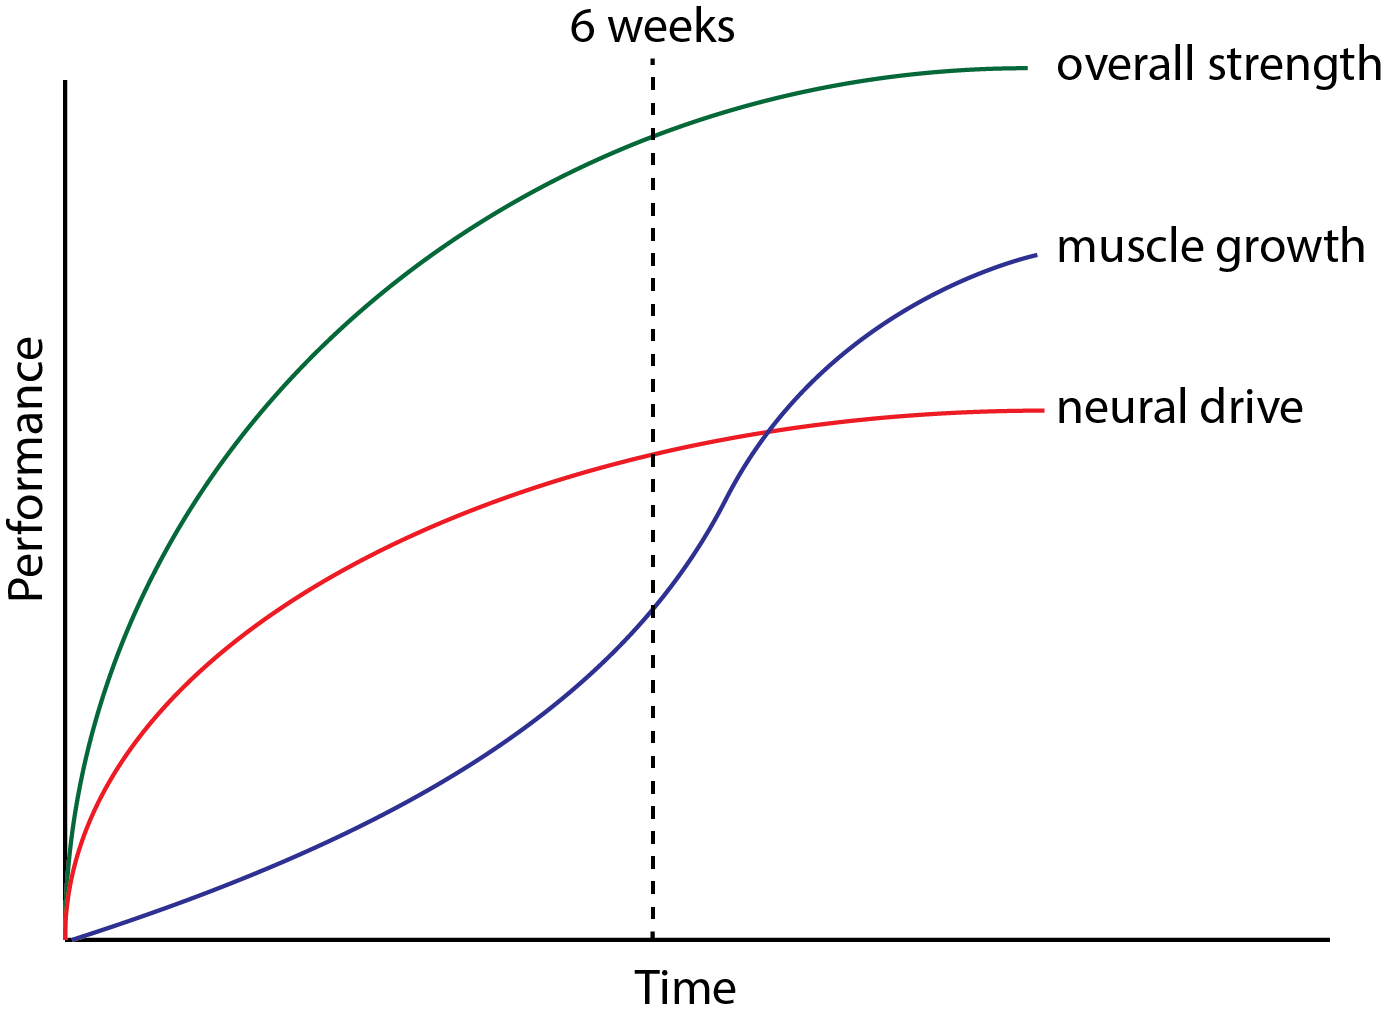 The Athletes Guide To Brain Strength Halo Neuroscience How Build Field Meter General Relationship Between Neural Changes And Muscle Growth Drive Improves Almost Immediately Whereas Muscular Development Takes More Time